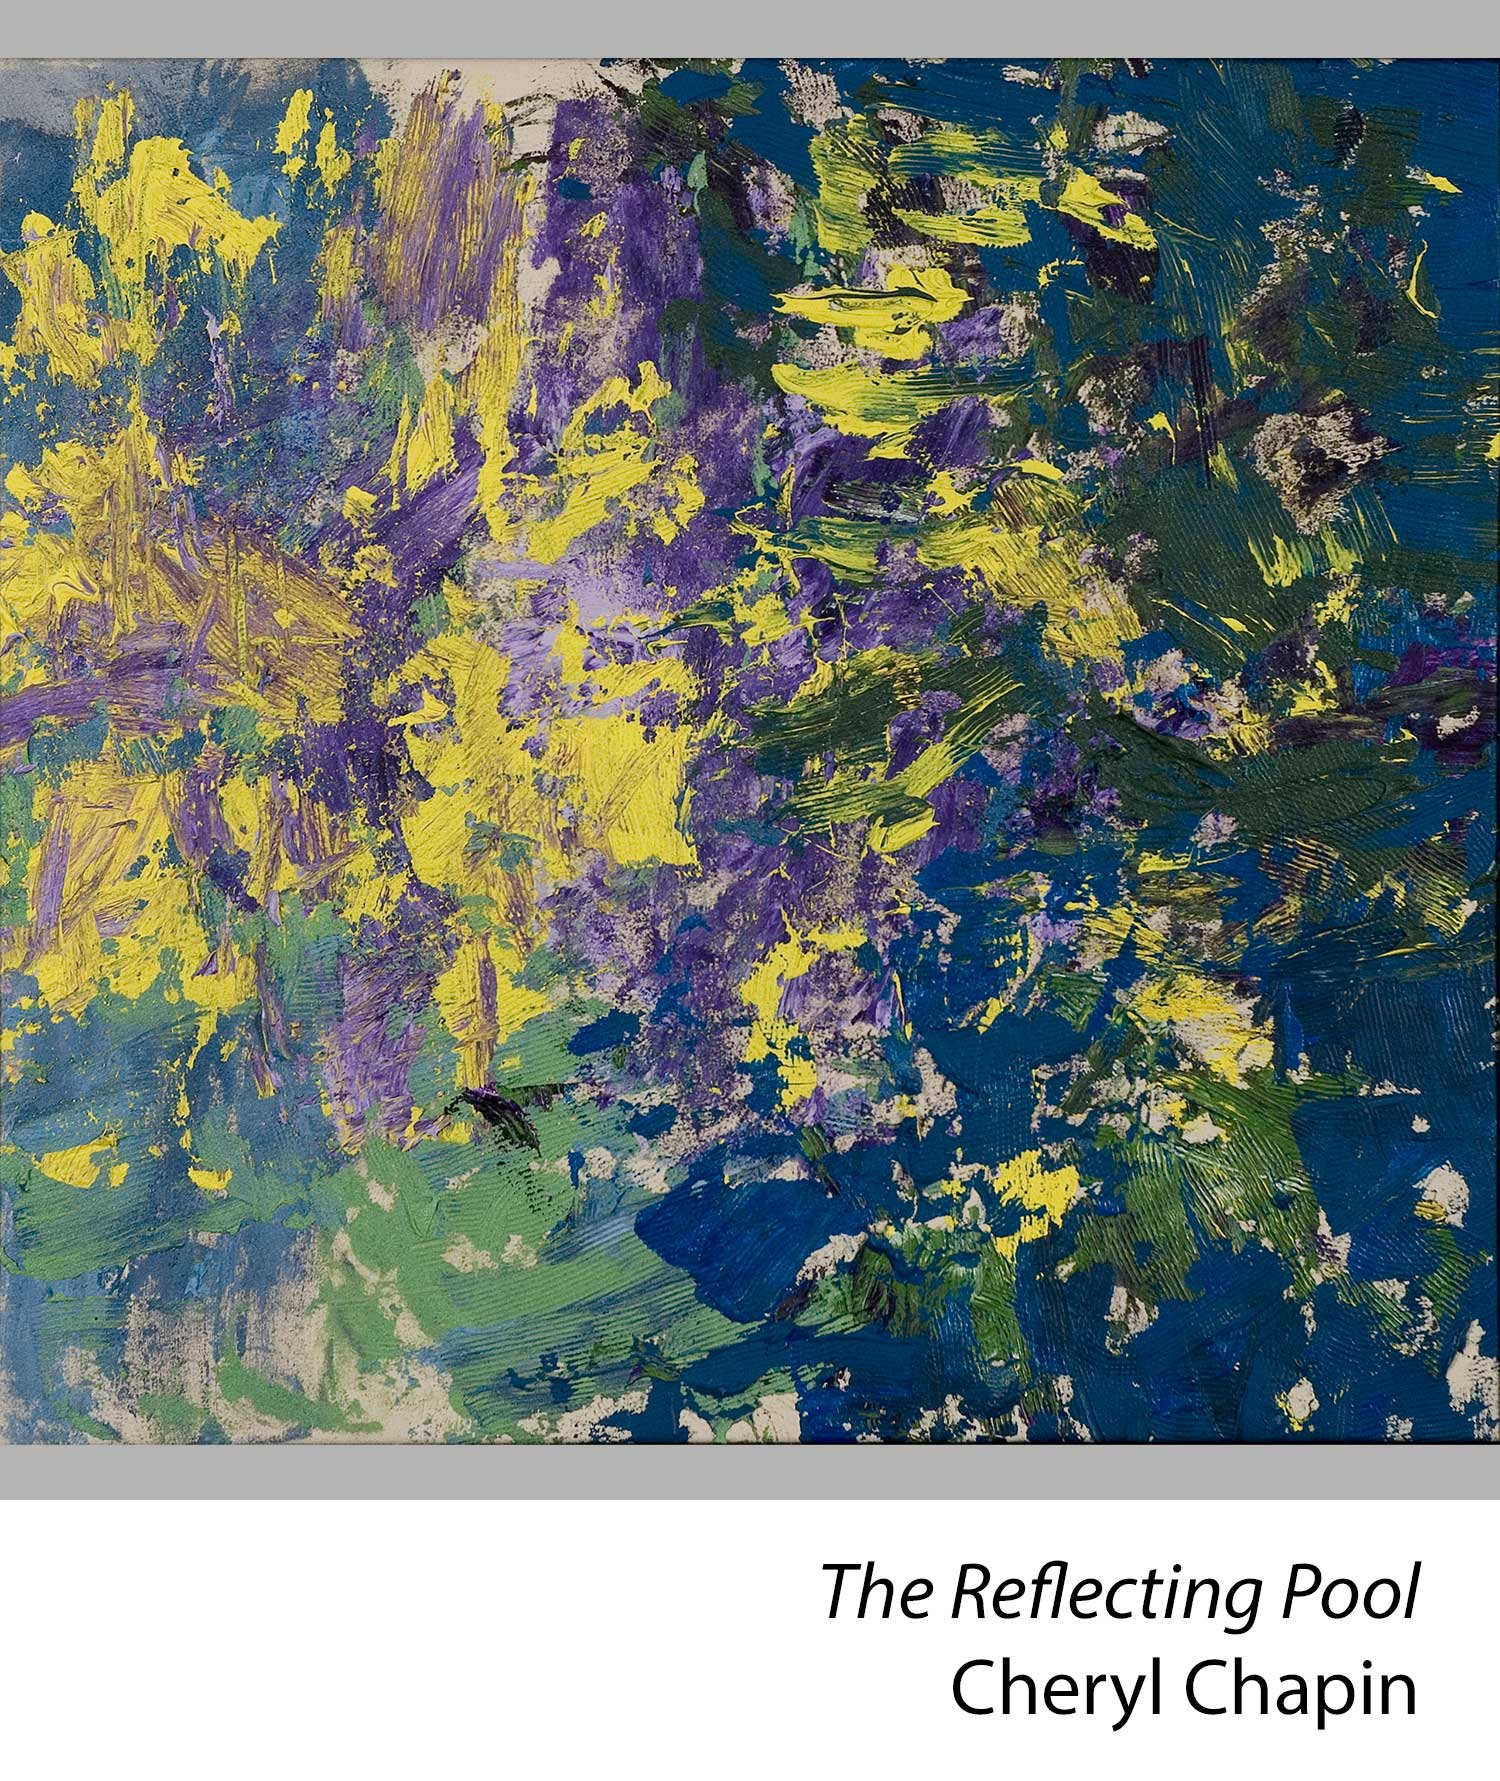 The Reflecting Pool by Cheryl Chapin